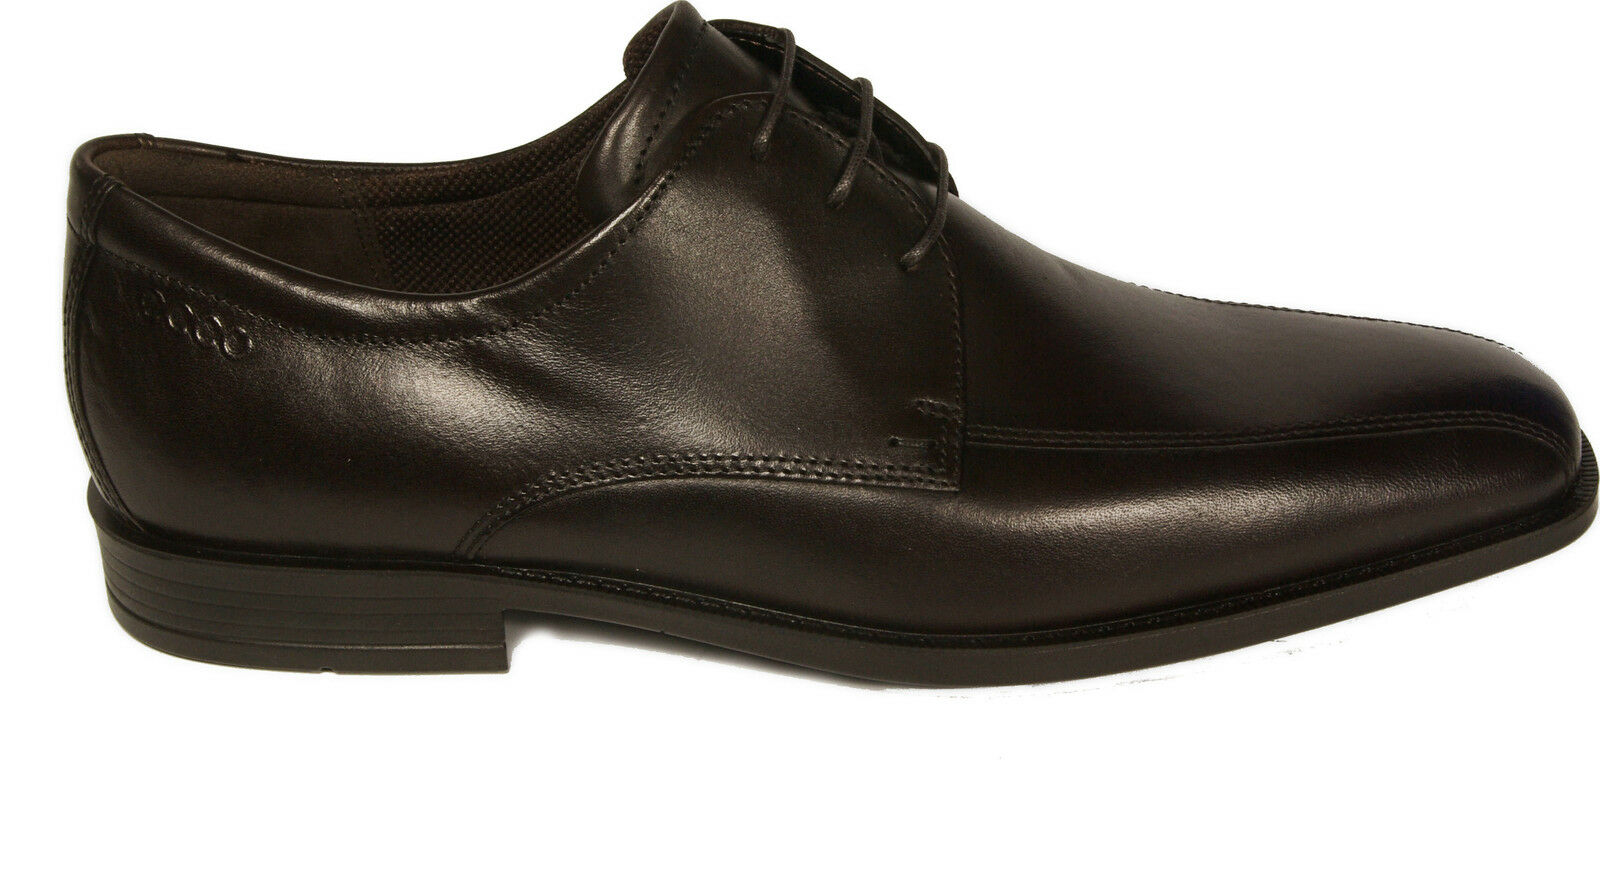 ECCO shoes mens shoes dress model EDINBURGH lace dark brown leather NEW